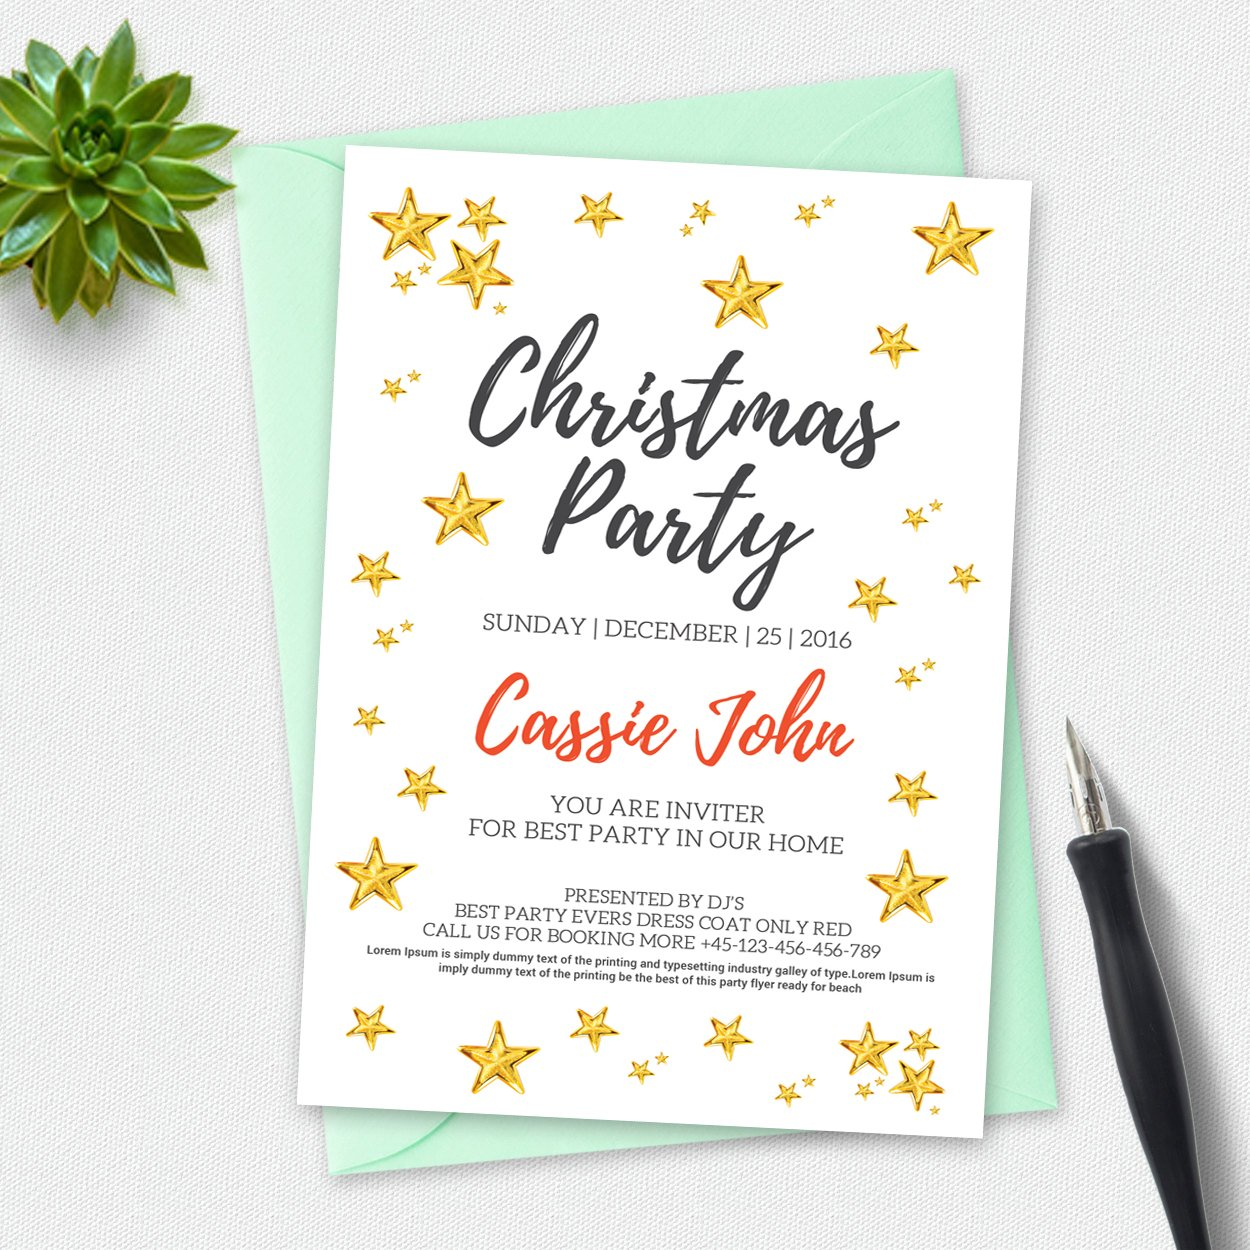 christmas party invitation card invitation templates creative market. Black Bedroom Furniture Sets. Home Design Ideas